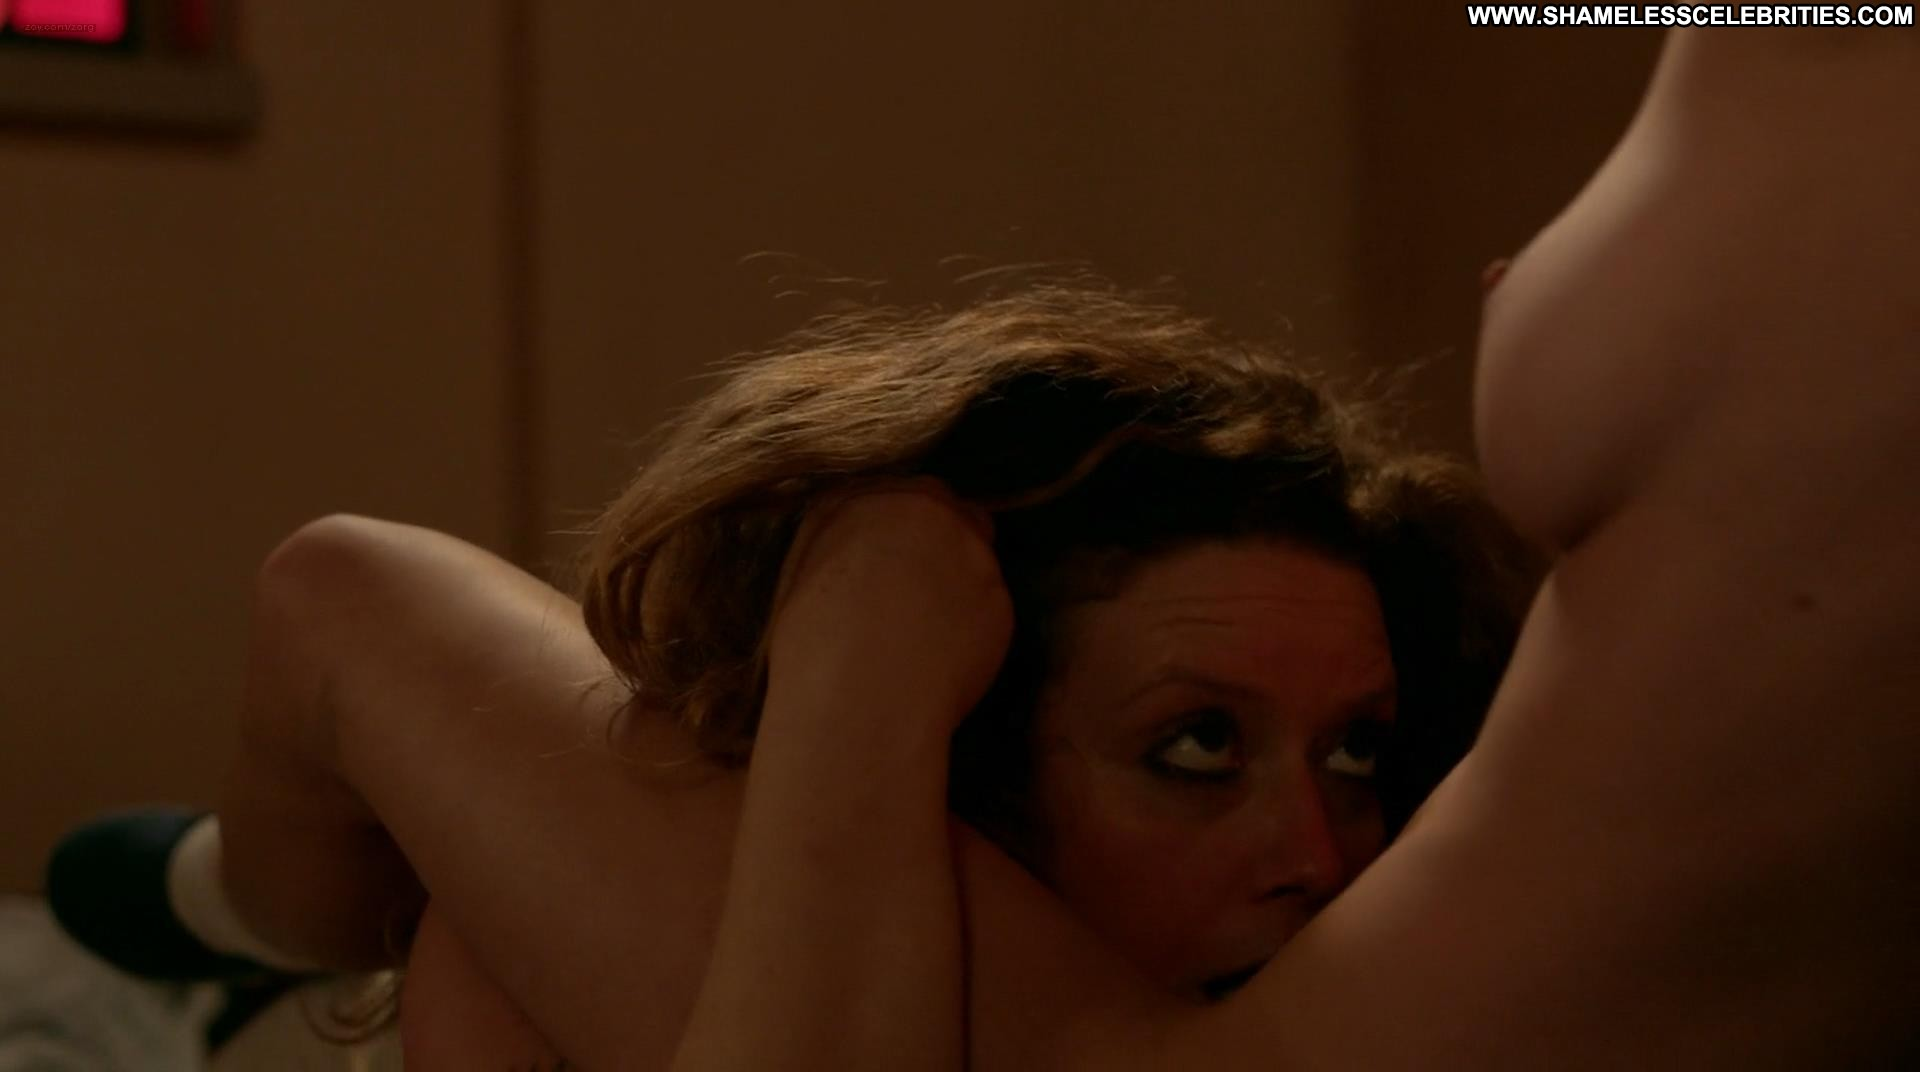 Emmy Rossums Sex Scene From Last Nights Shameless